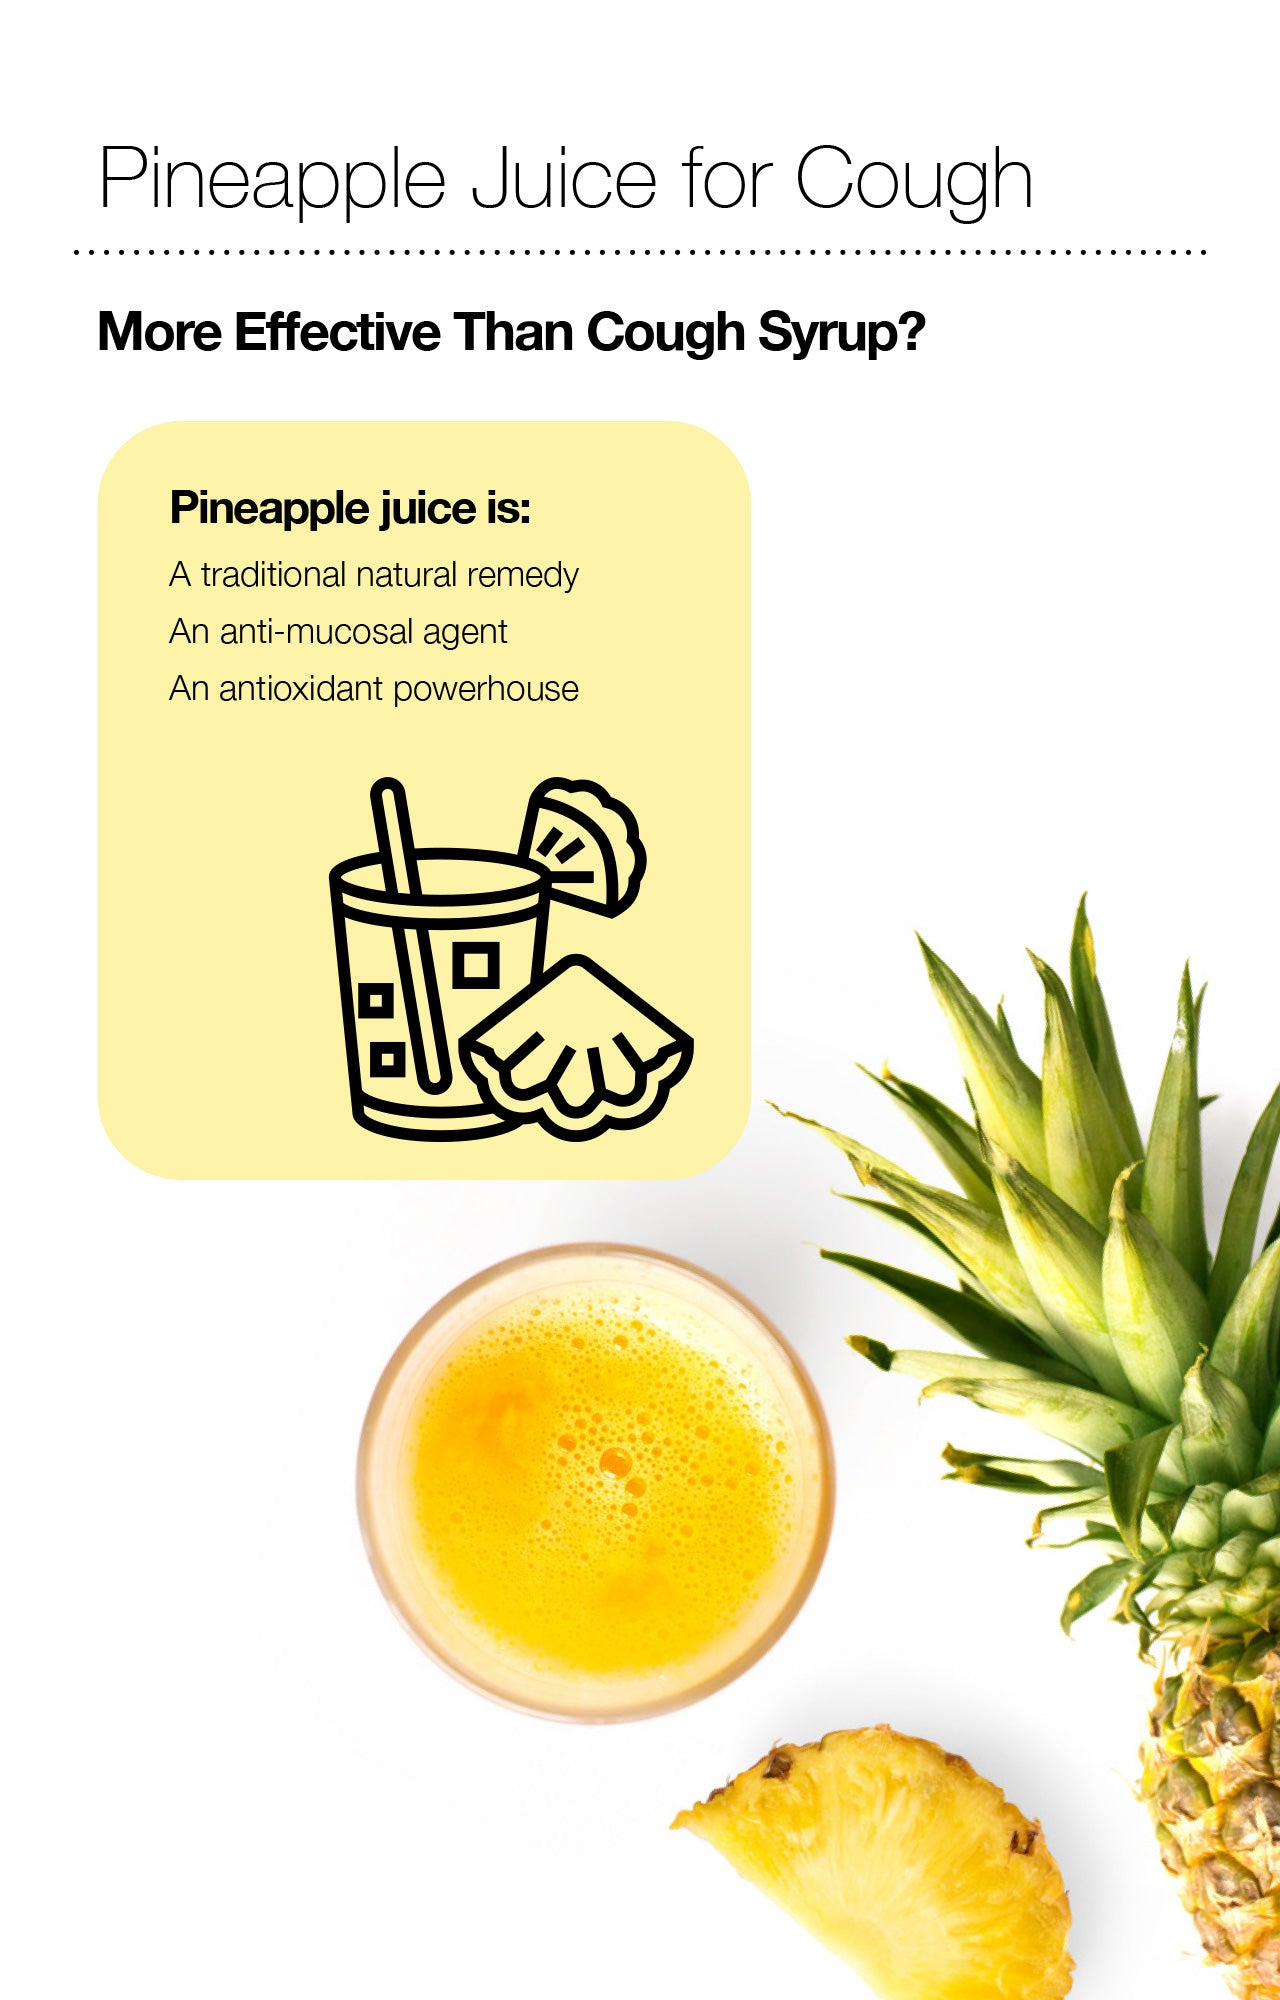 Pineapple Juice for Cough: More Effective Than Cough Syrup?